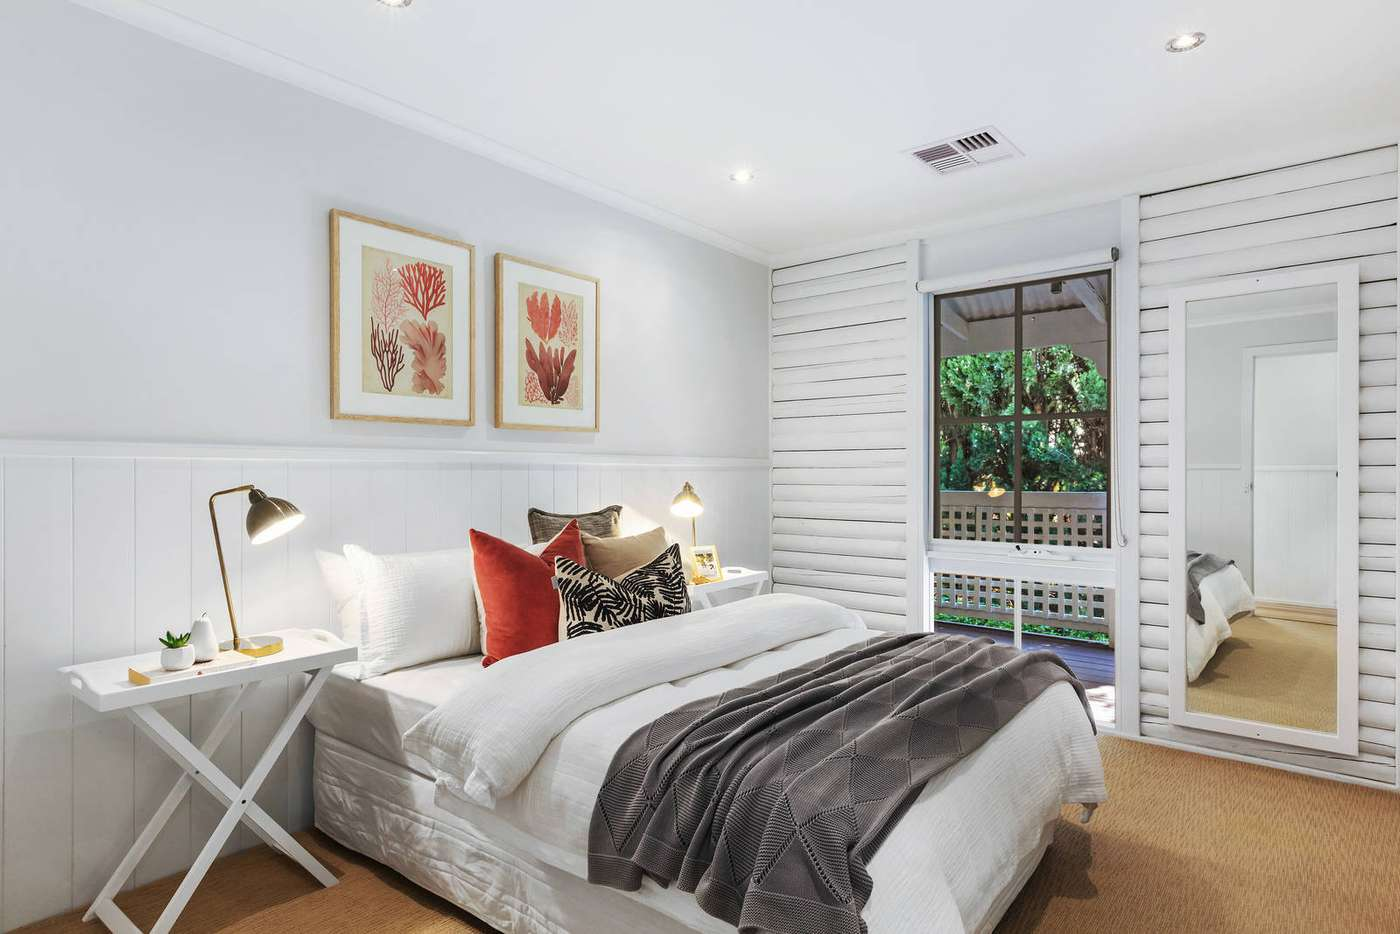 Sixth view of Homely house listing, 7 Mason Street, Mount Eliza VIC 3930